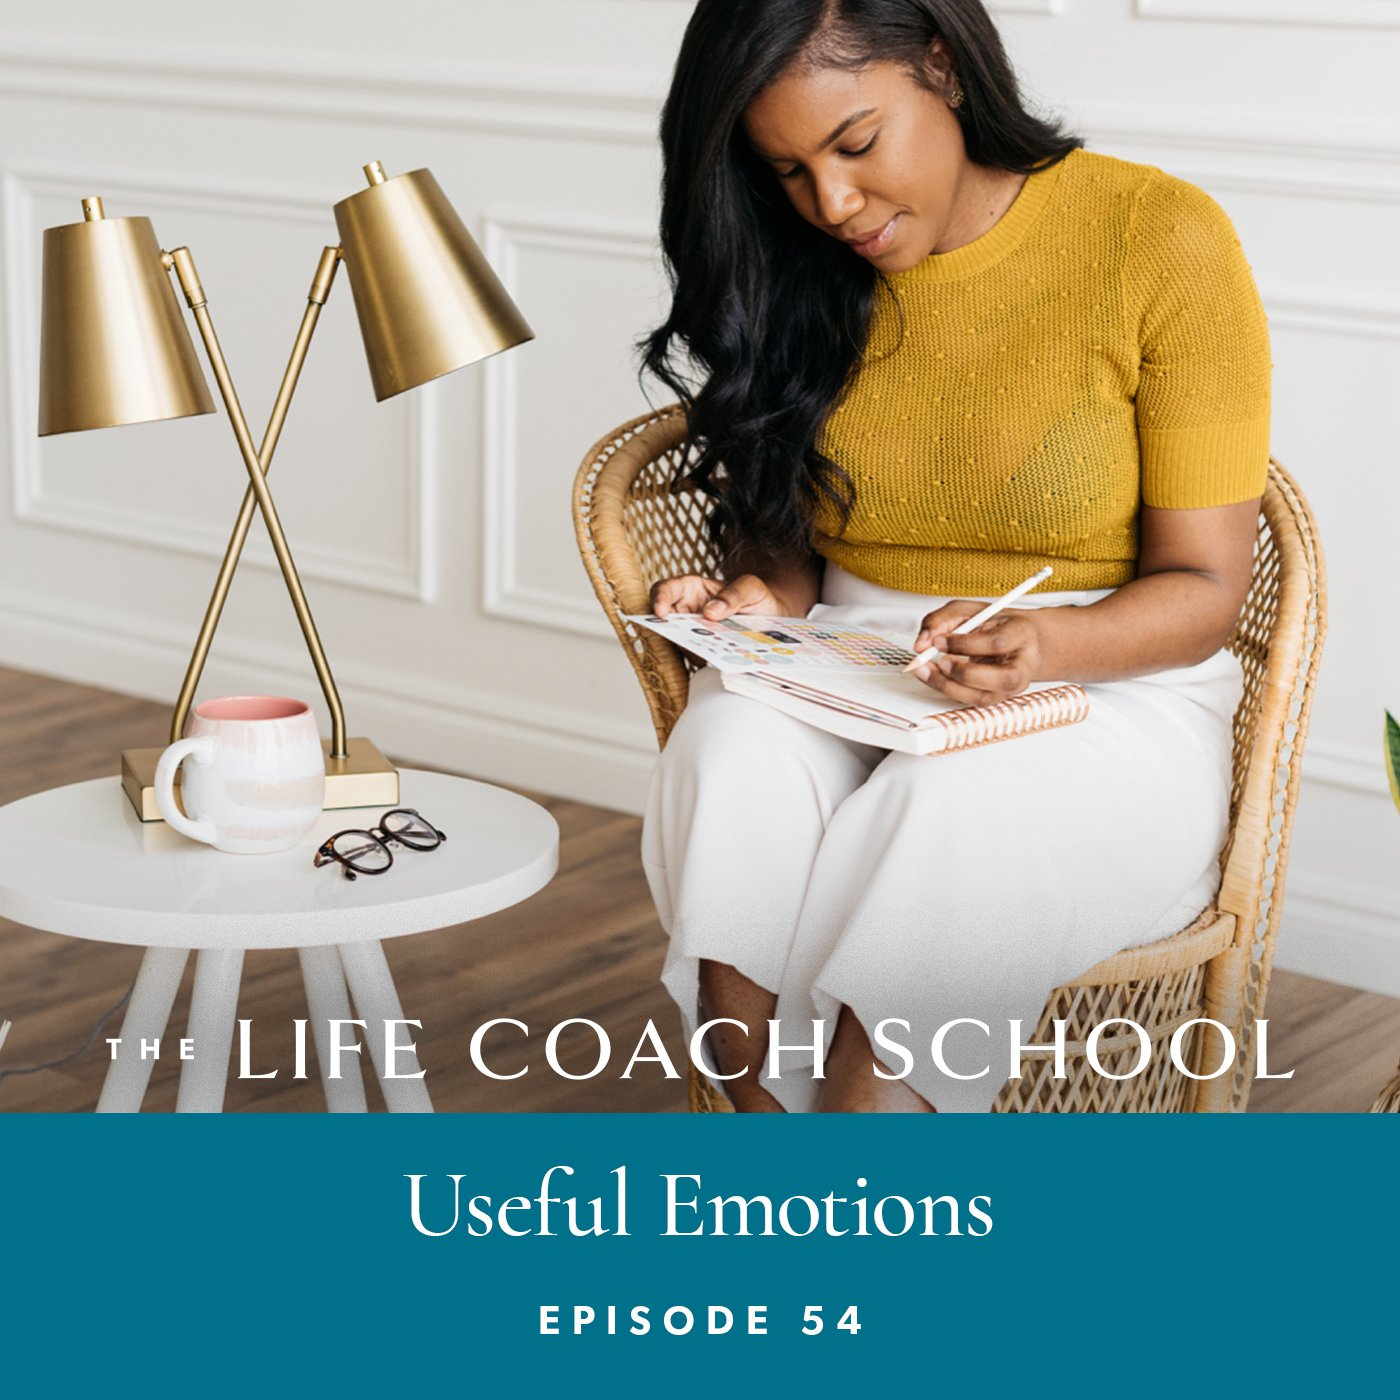 The Life Coach School Podcast with Brooke Castillo | Episode 54 | Useful Emotions